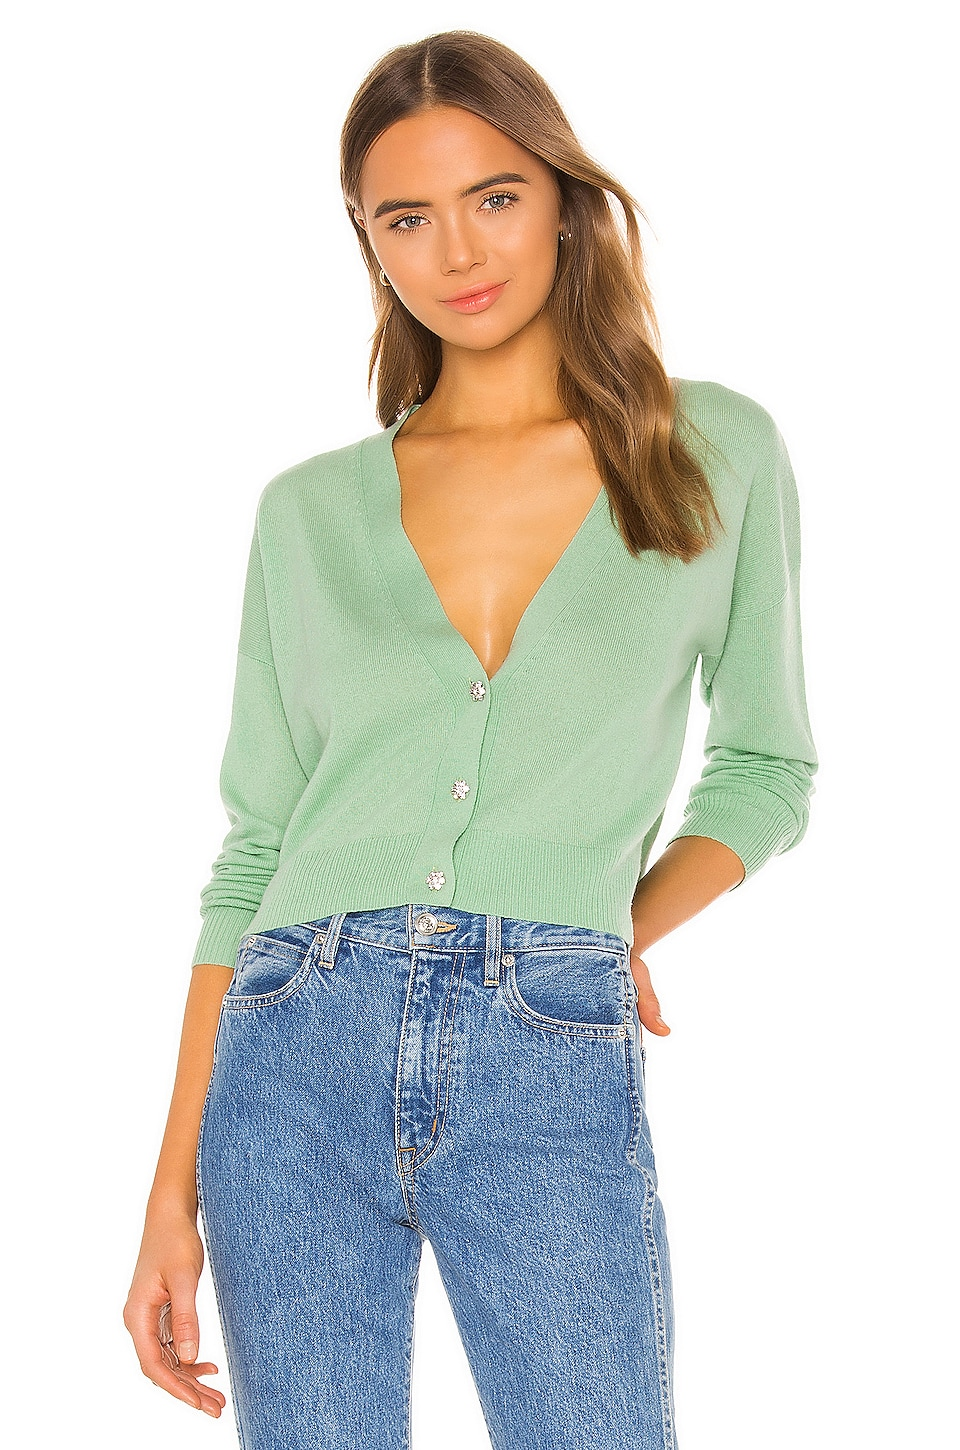 Autumn Cashmere X REVOLVE Embellished Cropped Cardigan in Lettuce